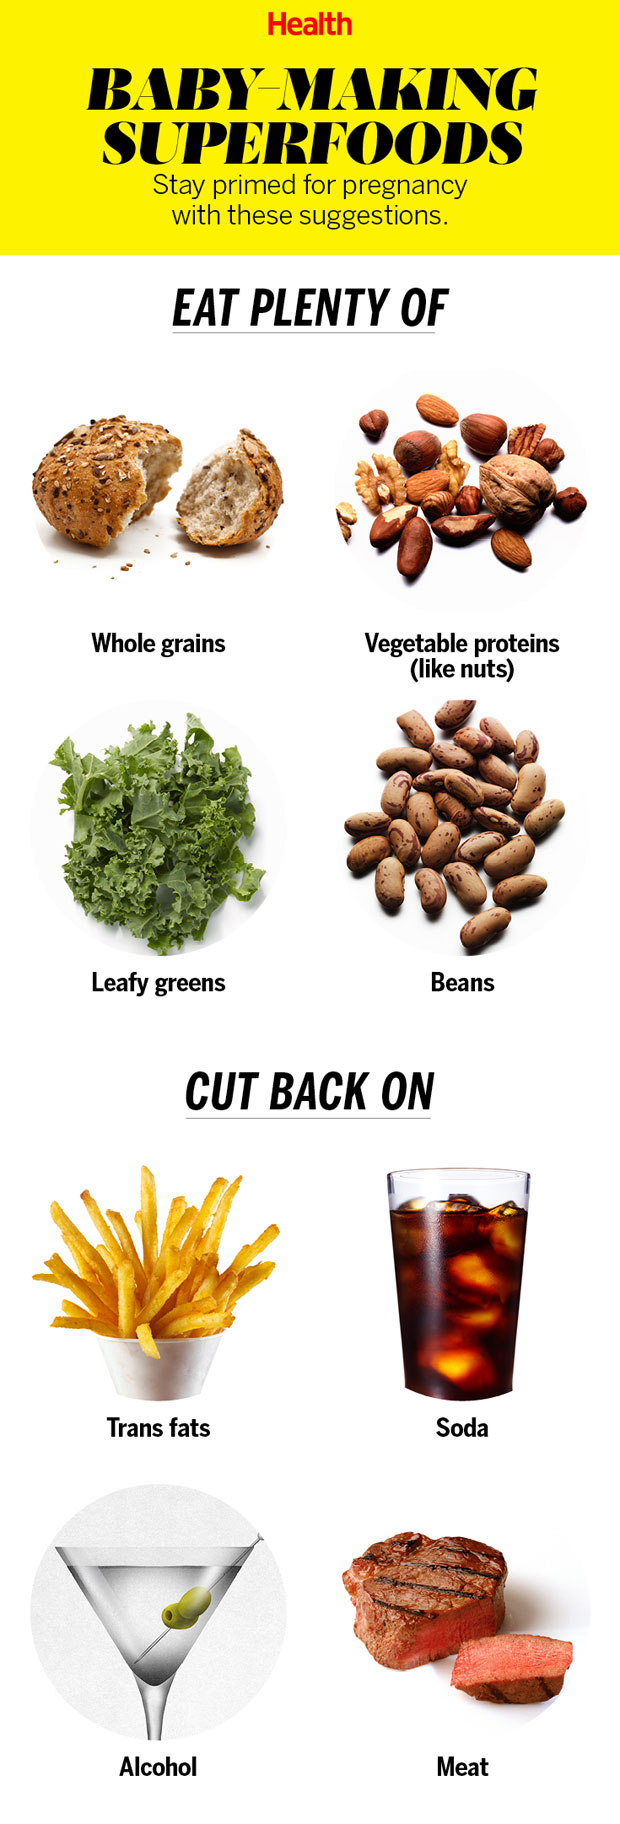 pregnancy-superfoods.jpg